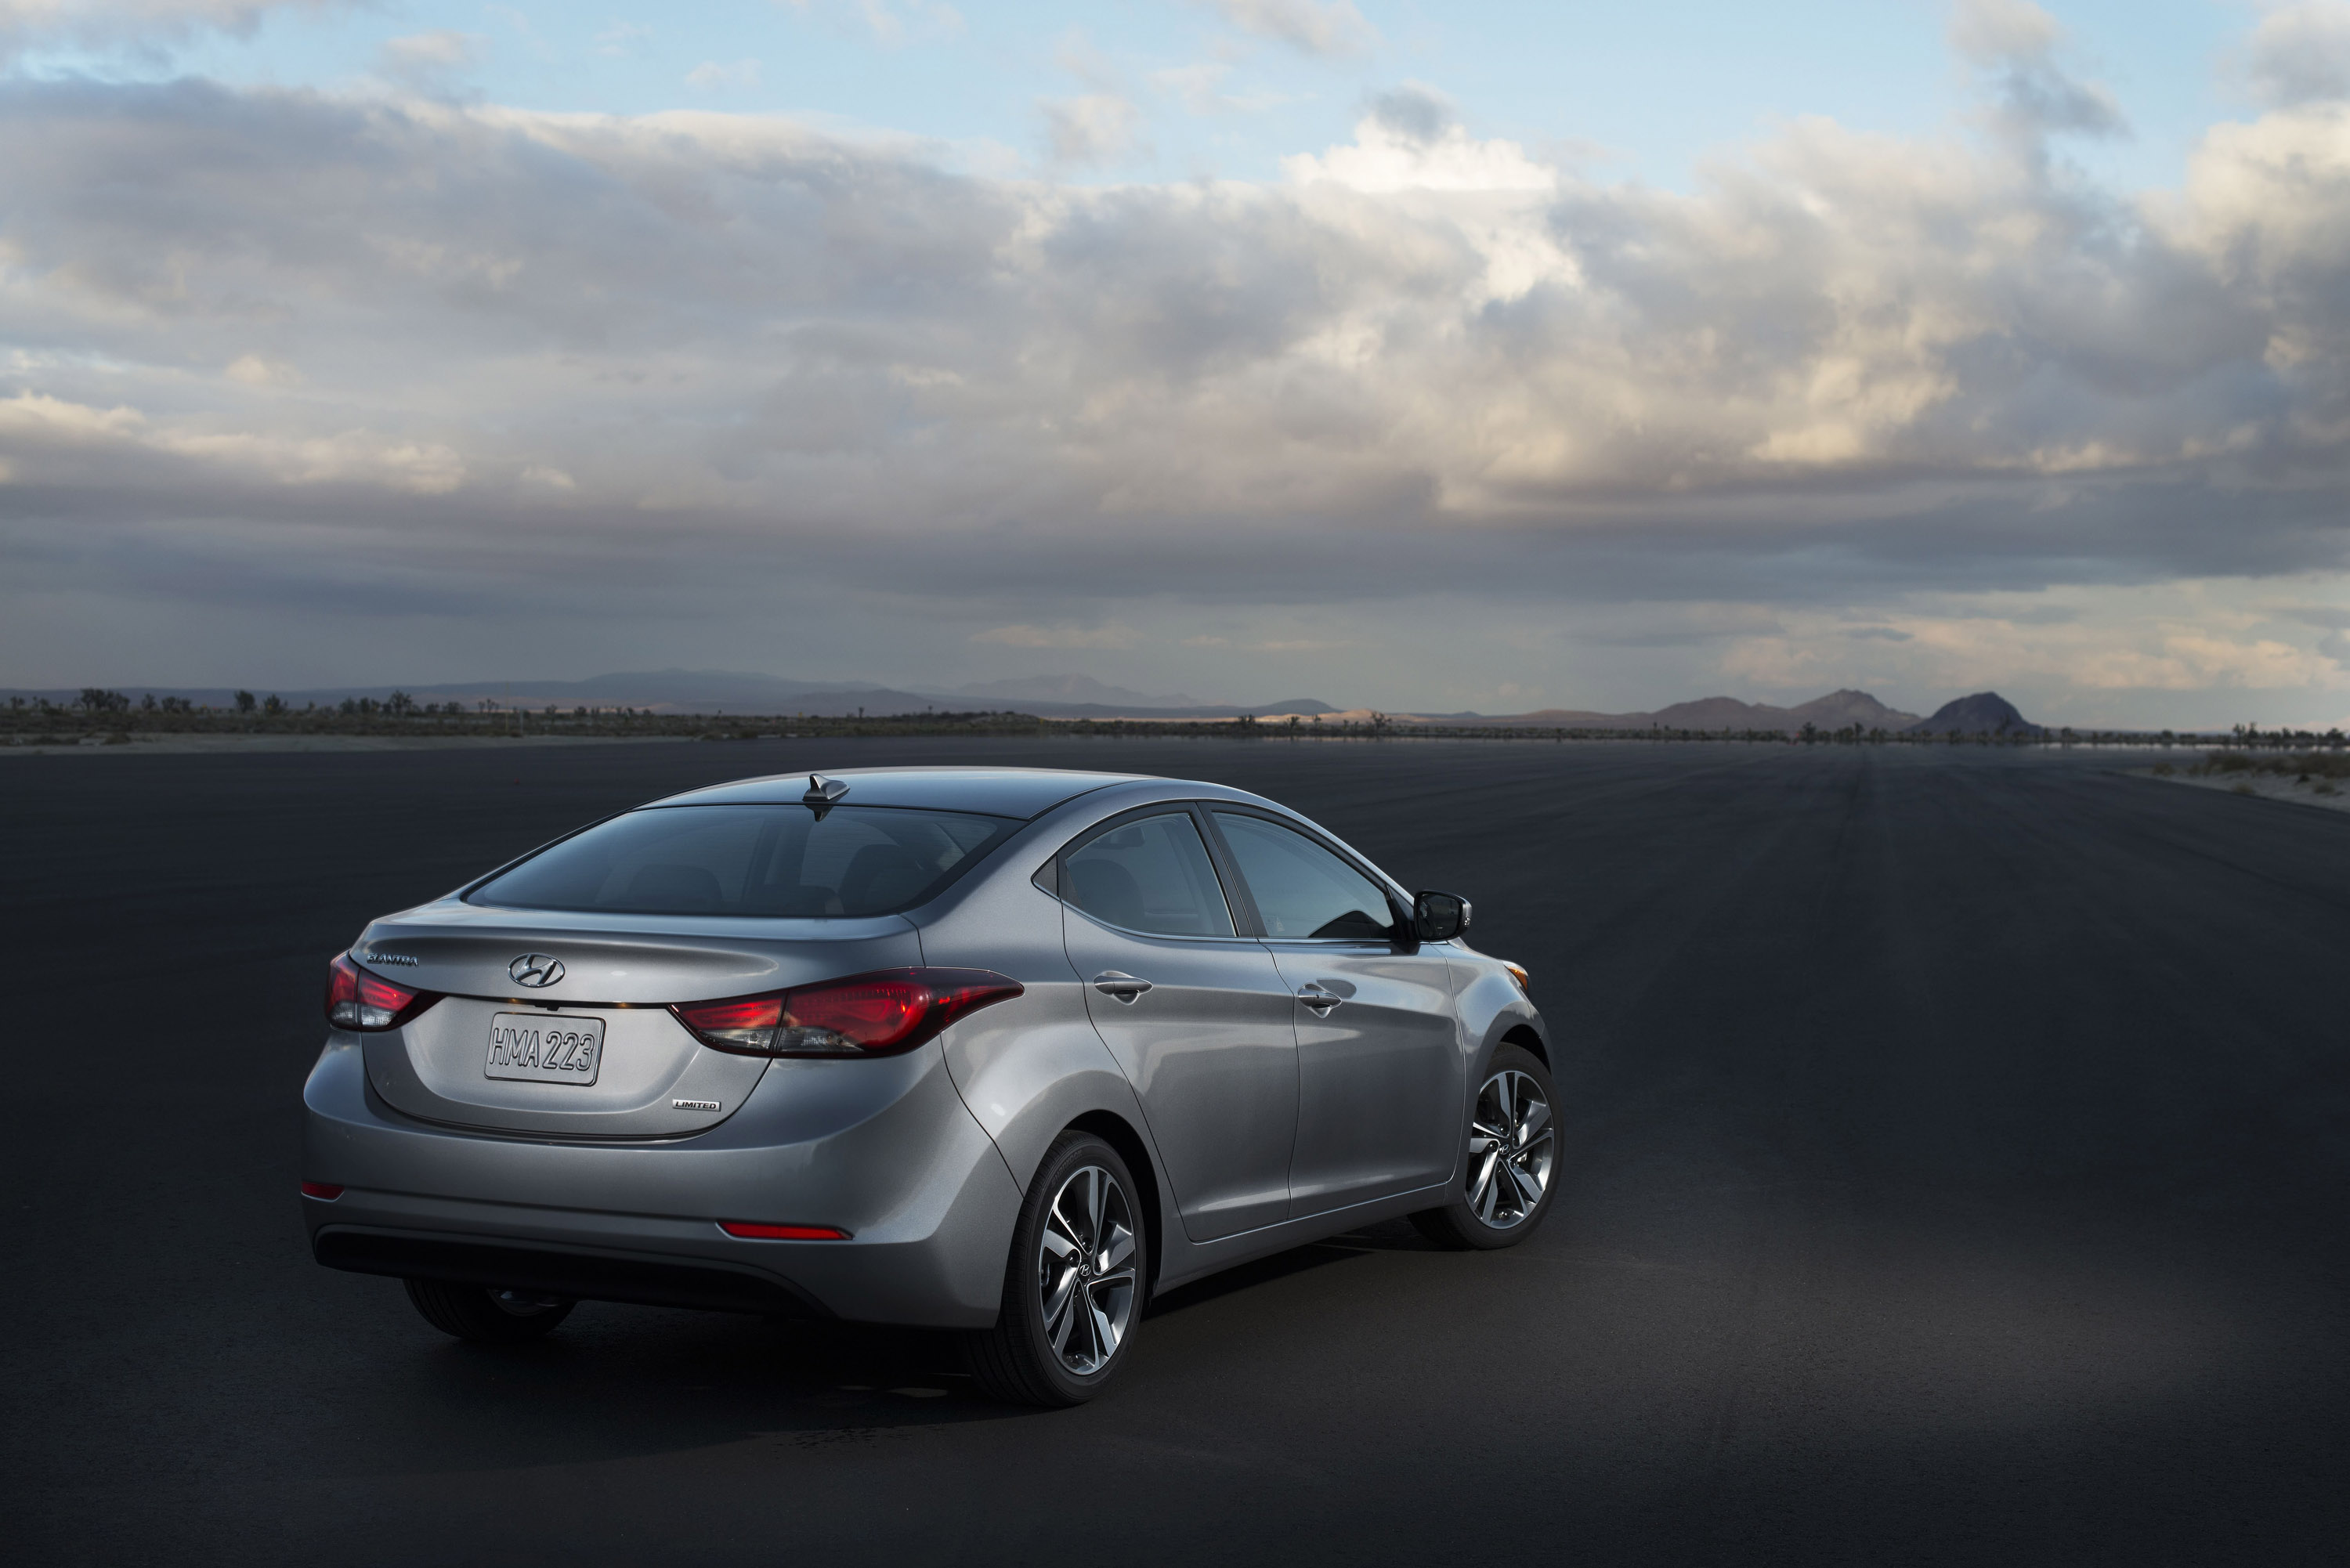 2014 Hyundai Elantra Sport video